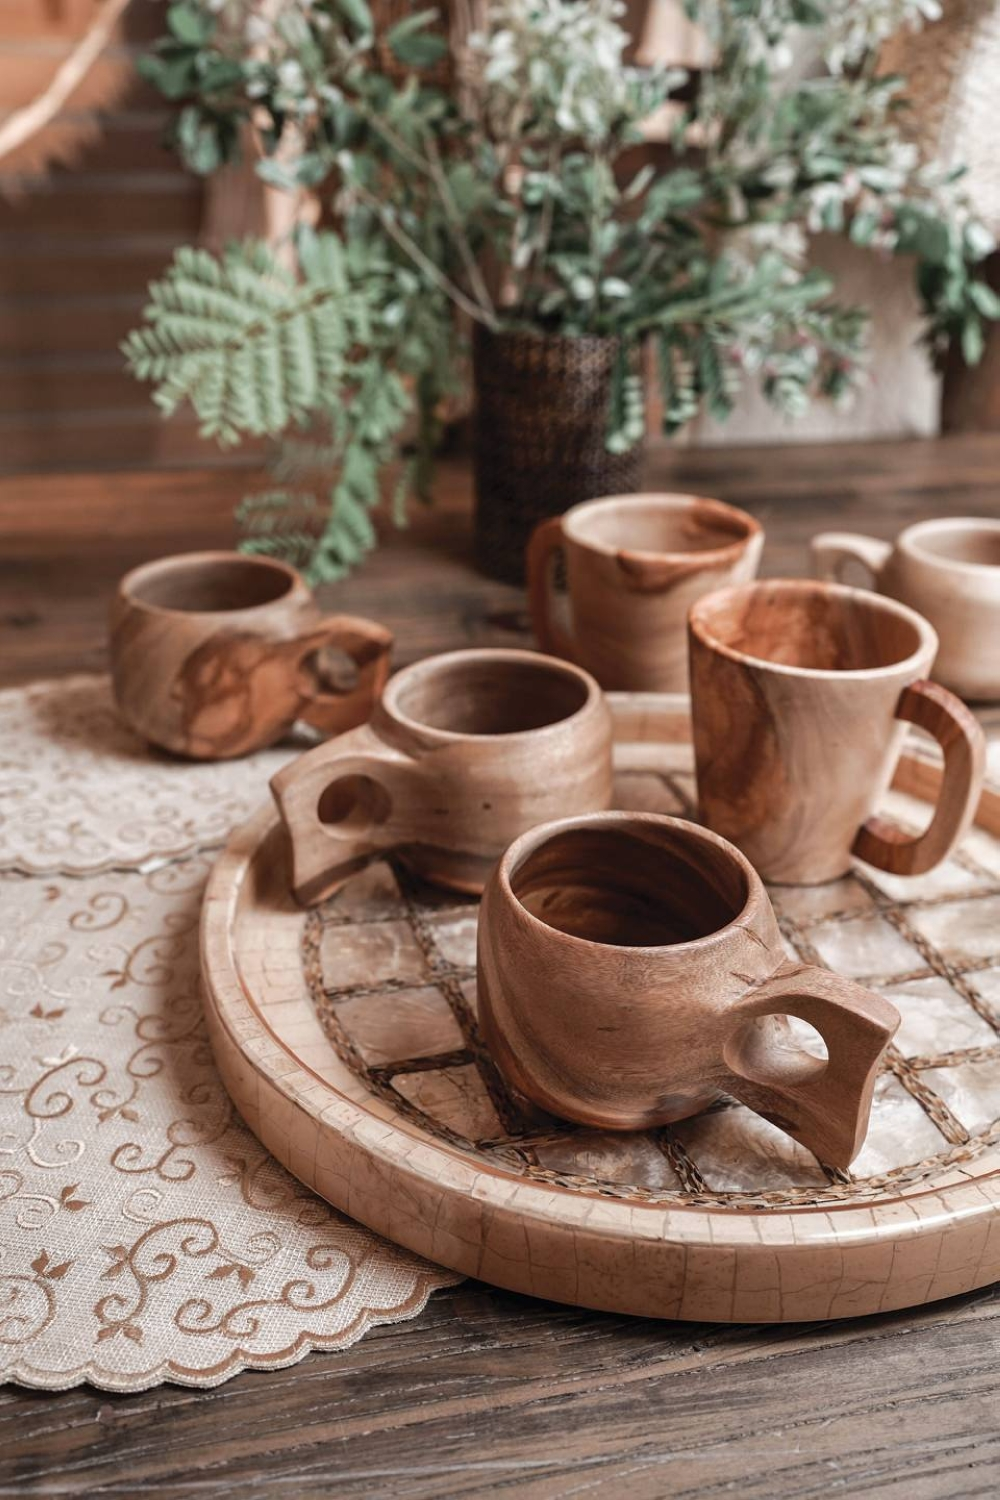 Enjoy your next cup of coffee or tea with these acacia mugs. Each one is expertly carved by skilled woodworkers from Pampanga, making them even more special.